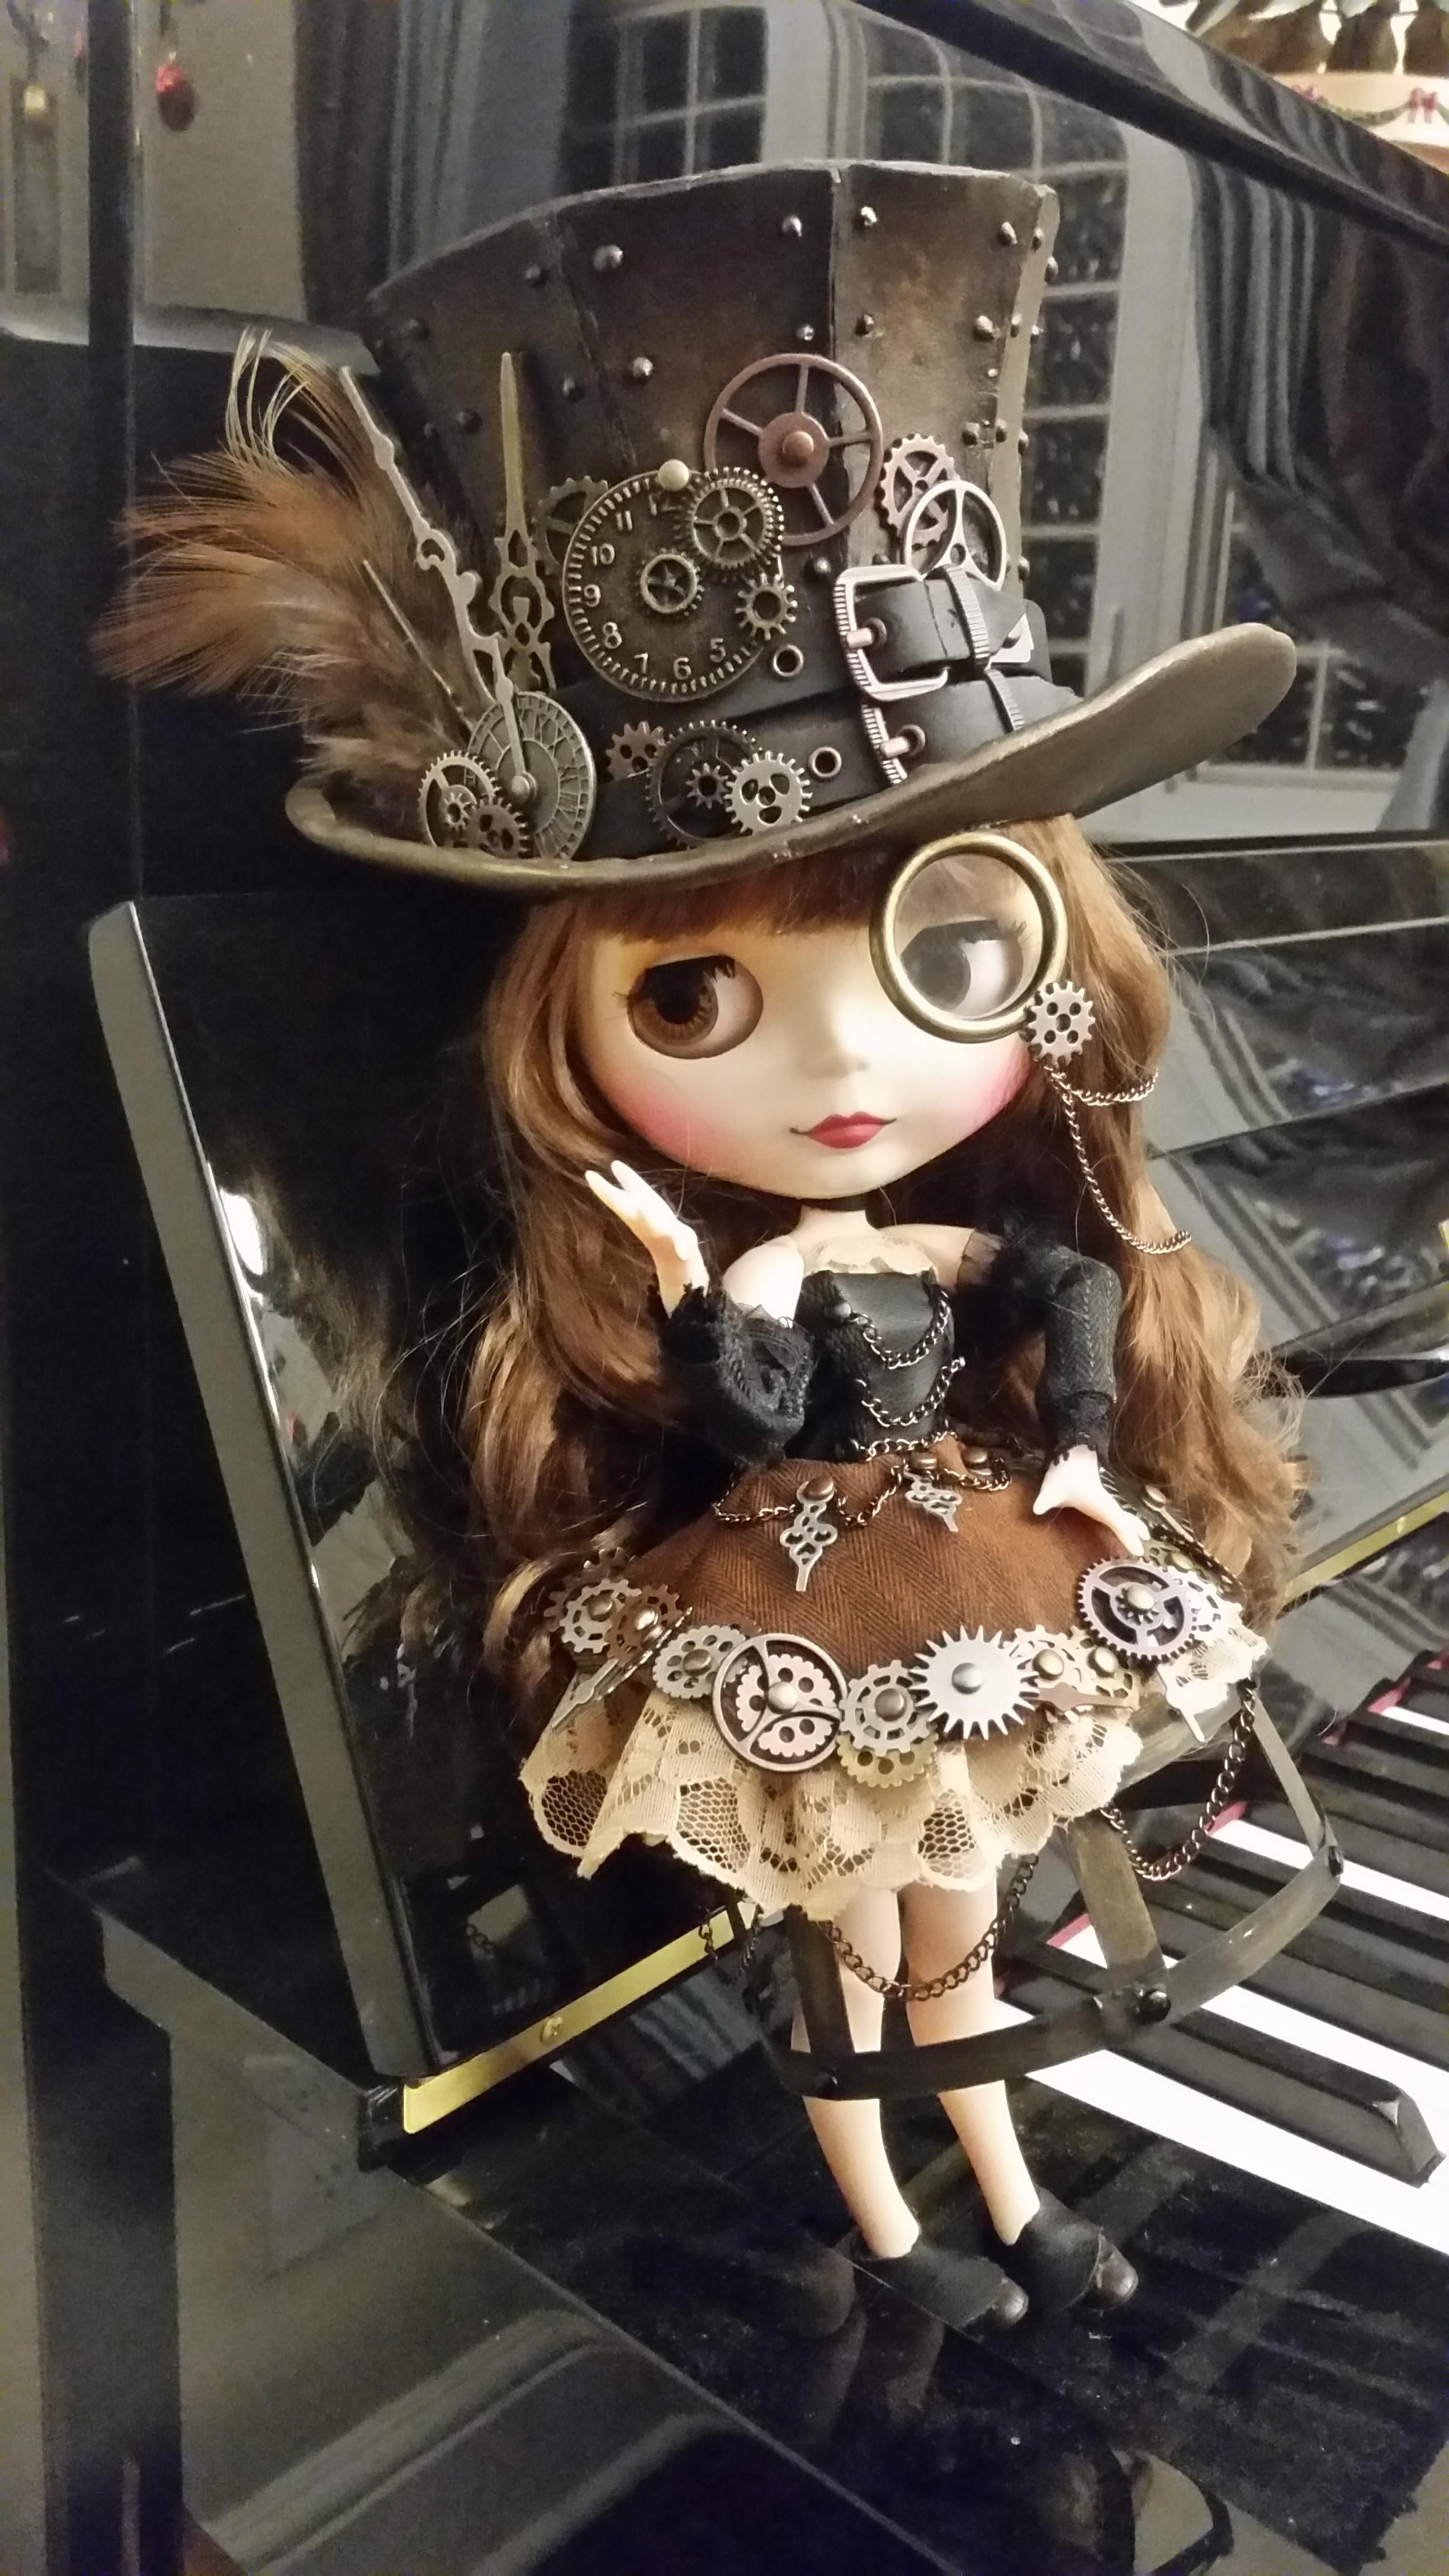 My Parents And I Designed A Steampunk Doll For My Little